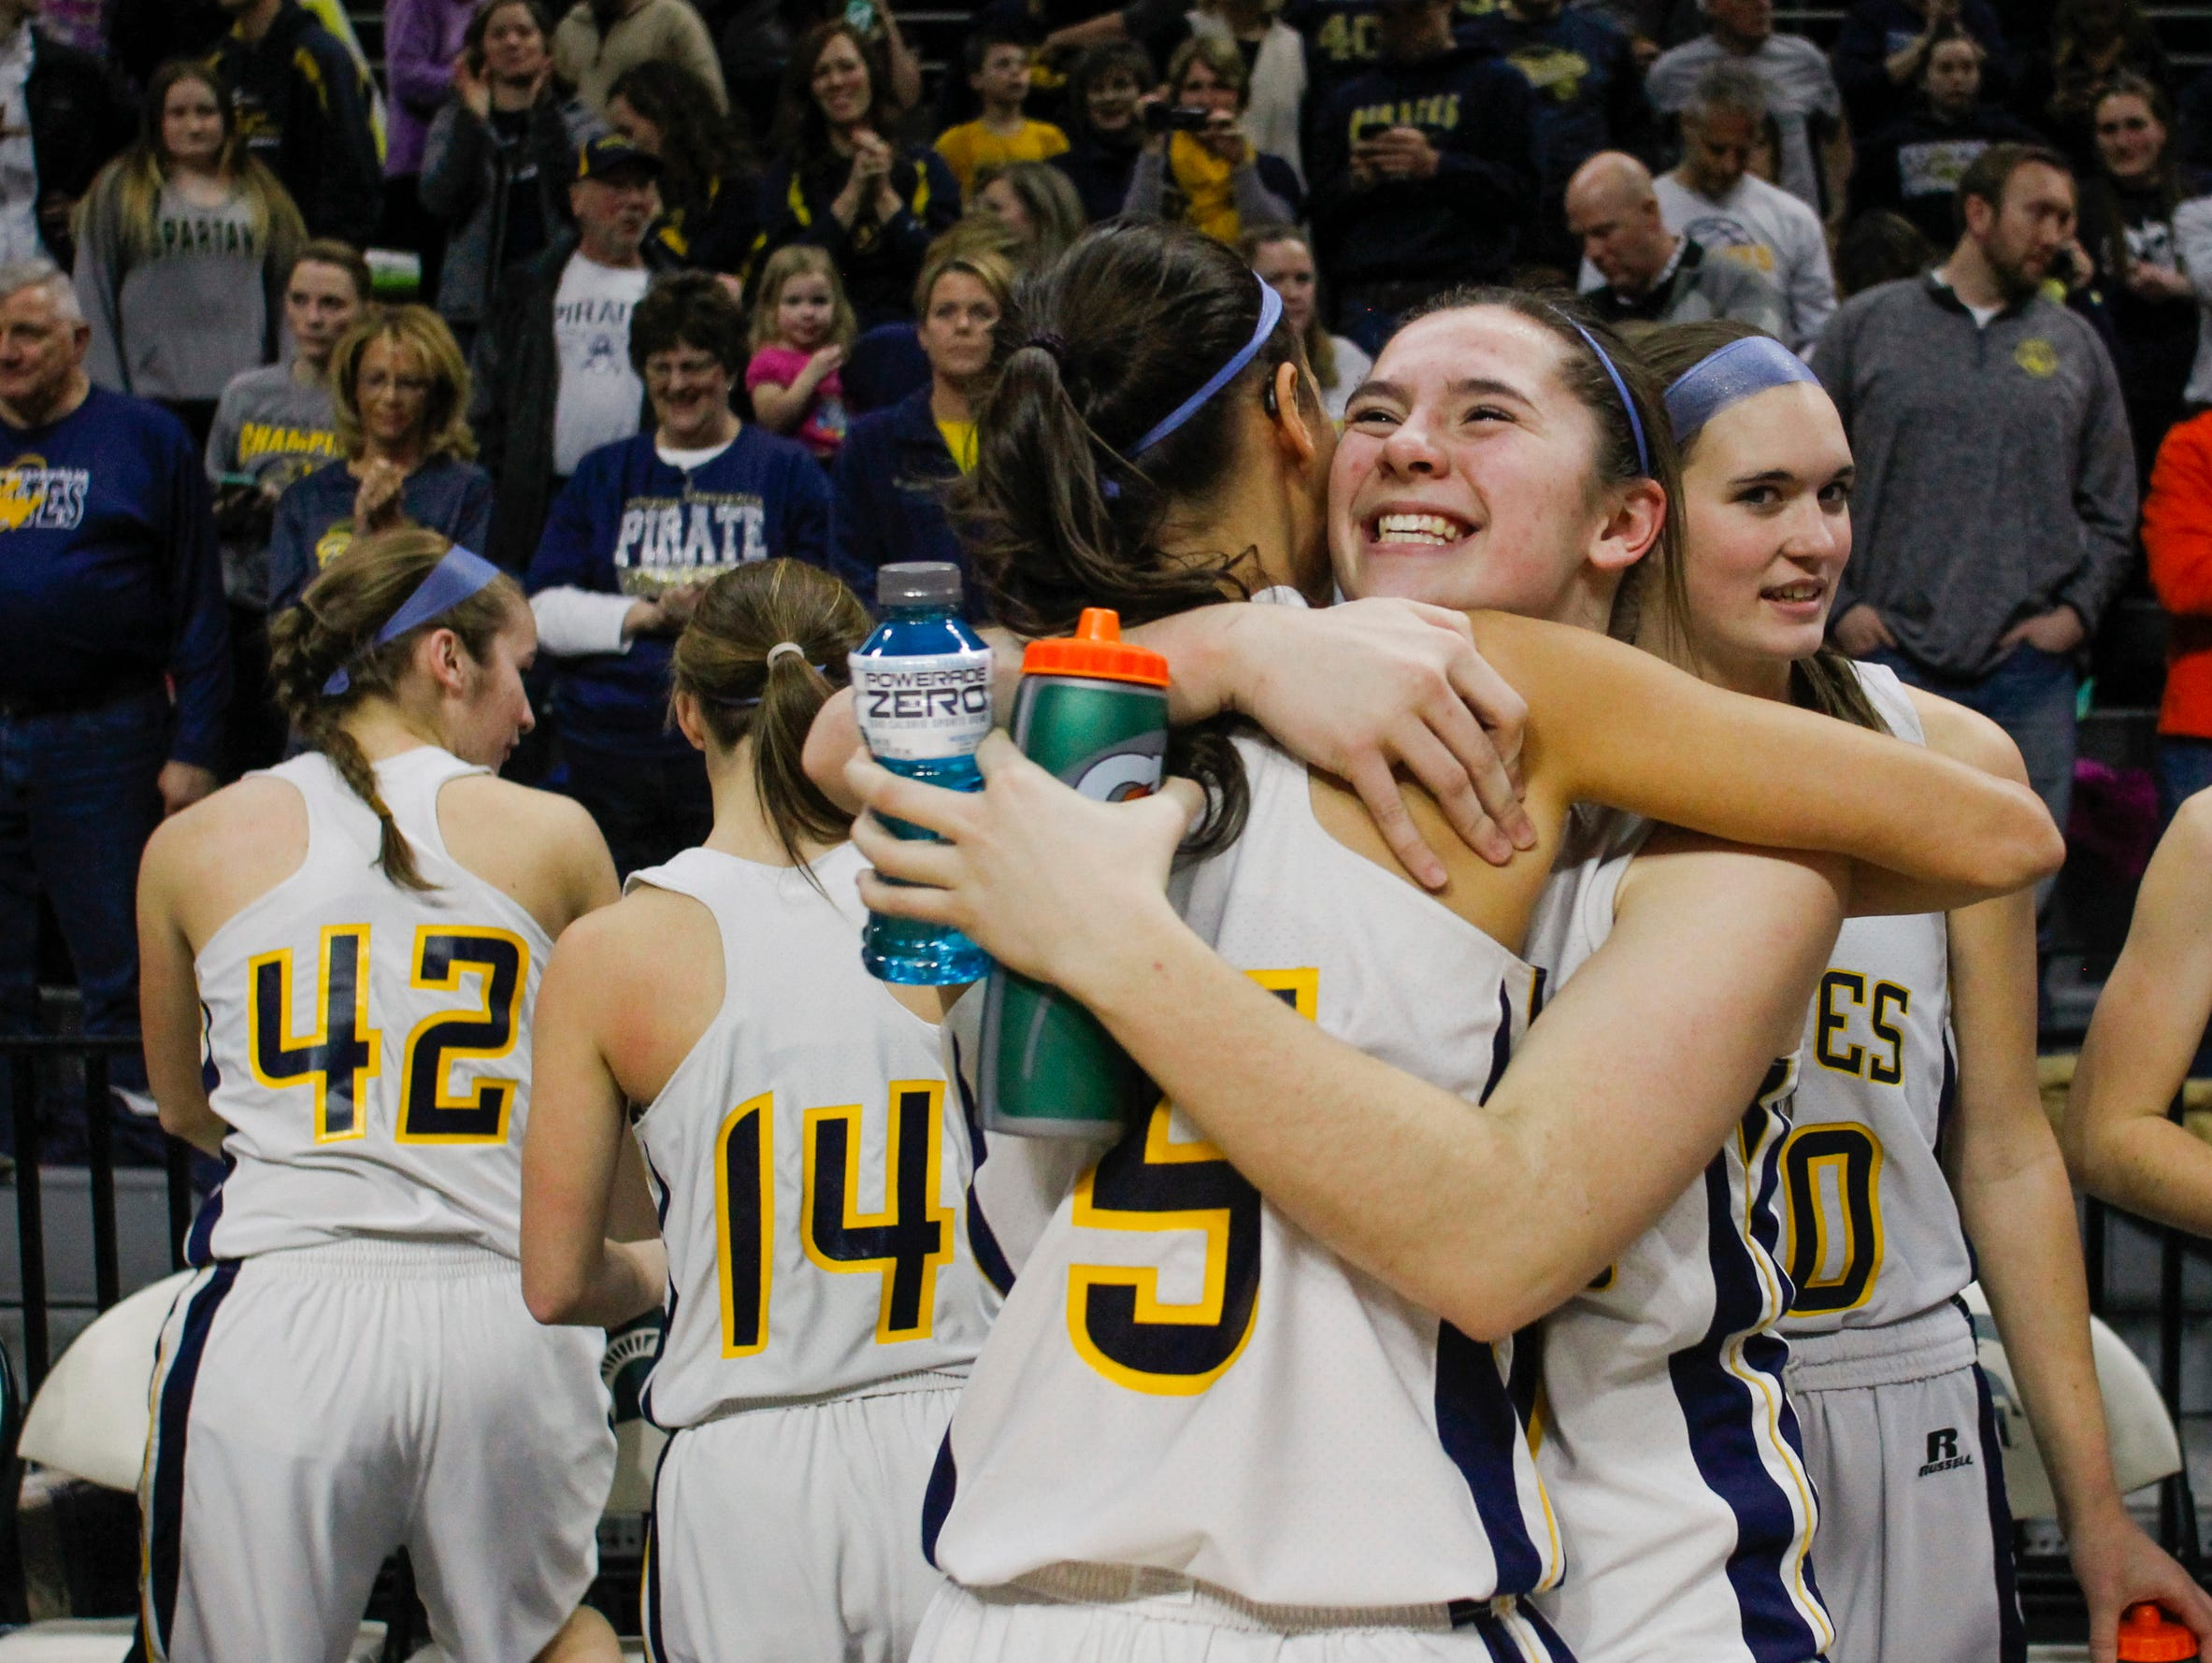 Pewamo-Westphalia 's Kylen Pohl hugs teammate Kiera Thelen, right, after the Pirates beat Maple City Glen Lake Thursday, March 16, 2017, during the Class B Semifinal at the Breslin in East Lansing. P-W won 64-51.